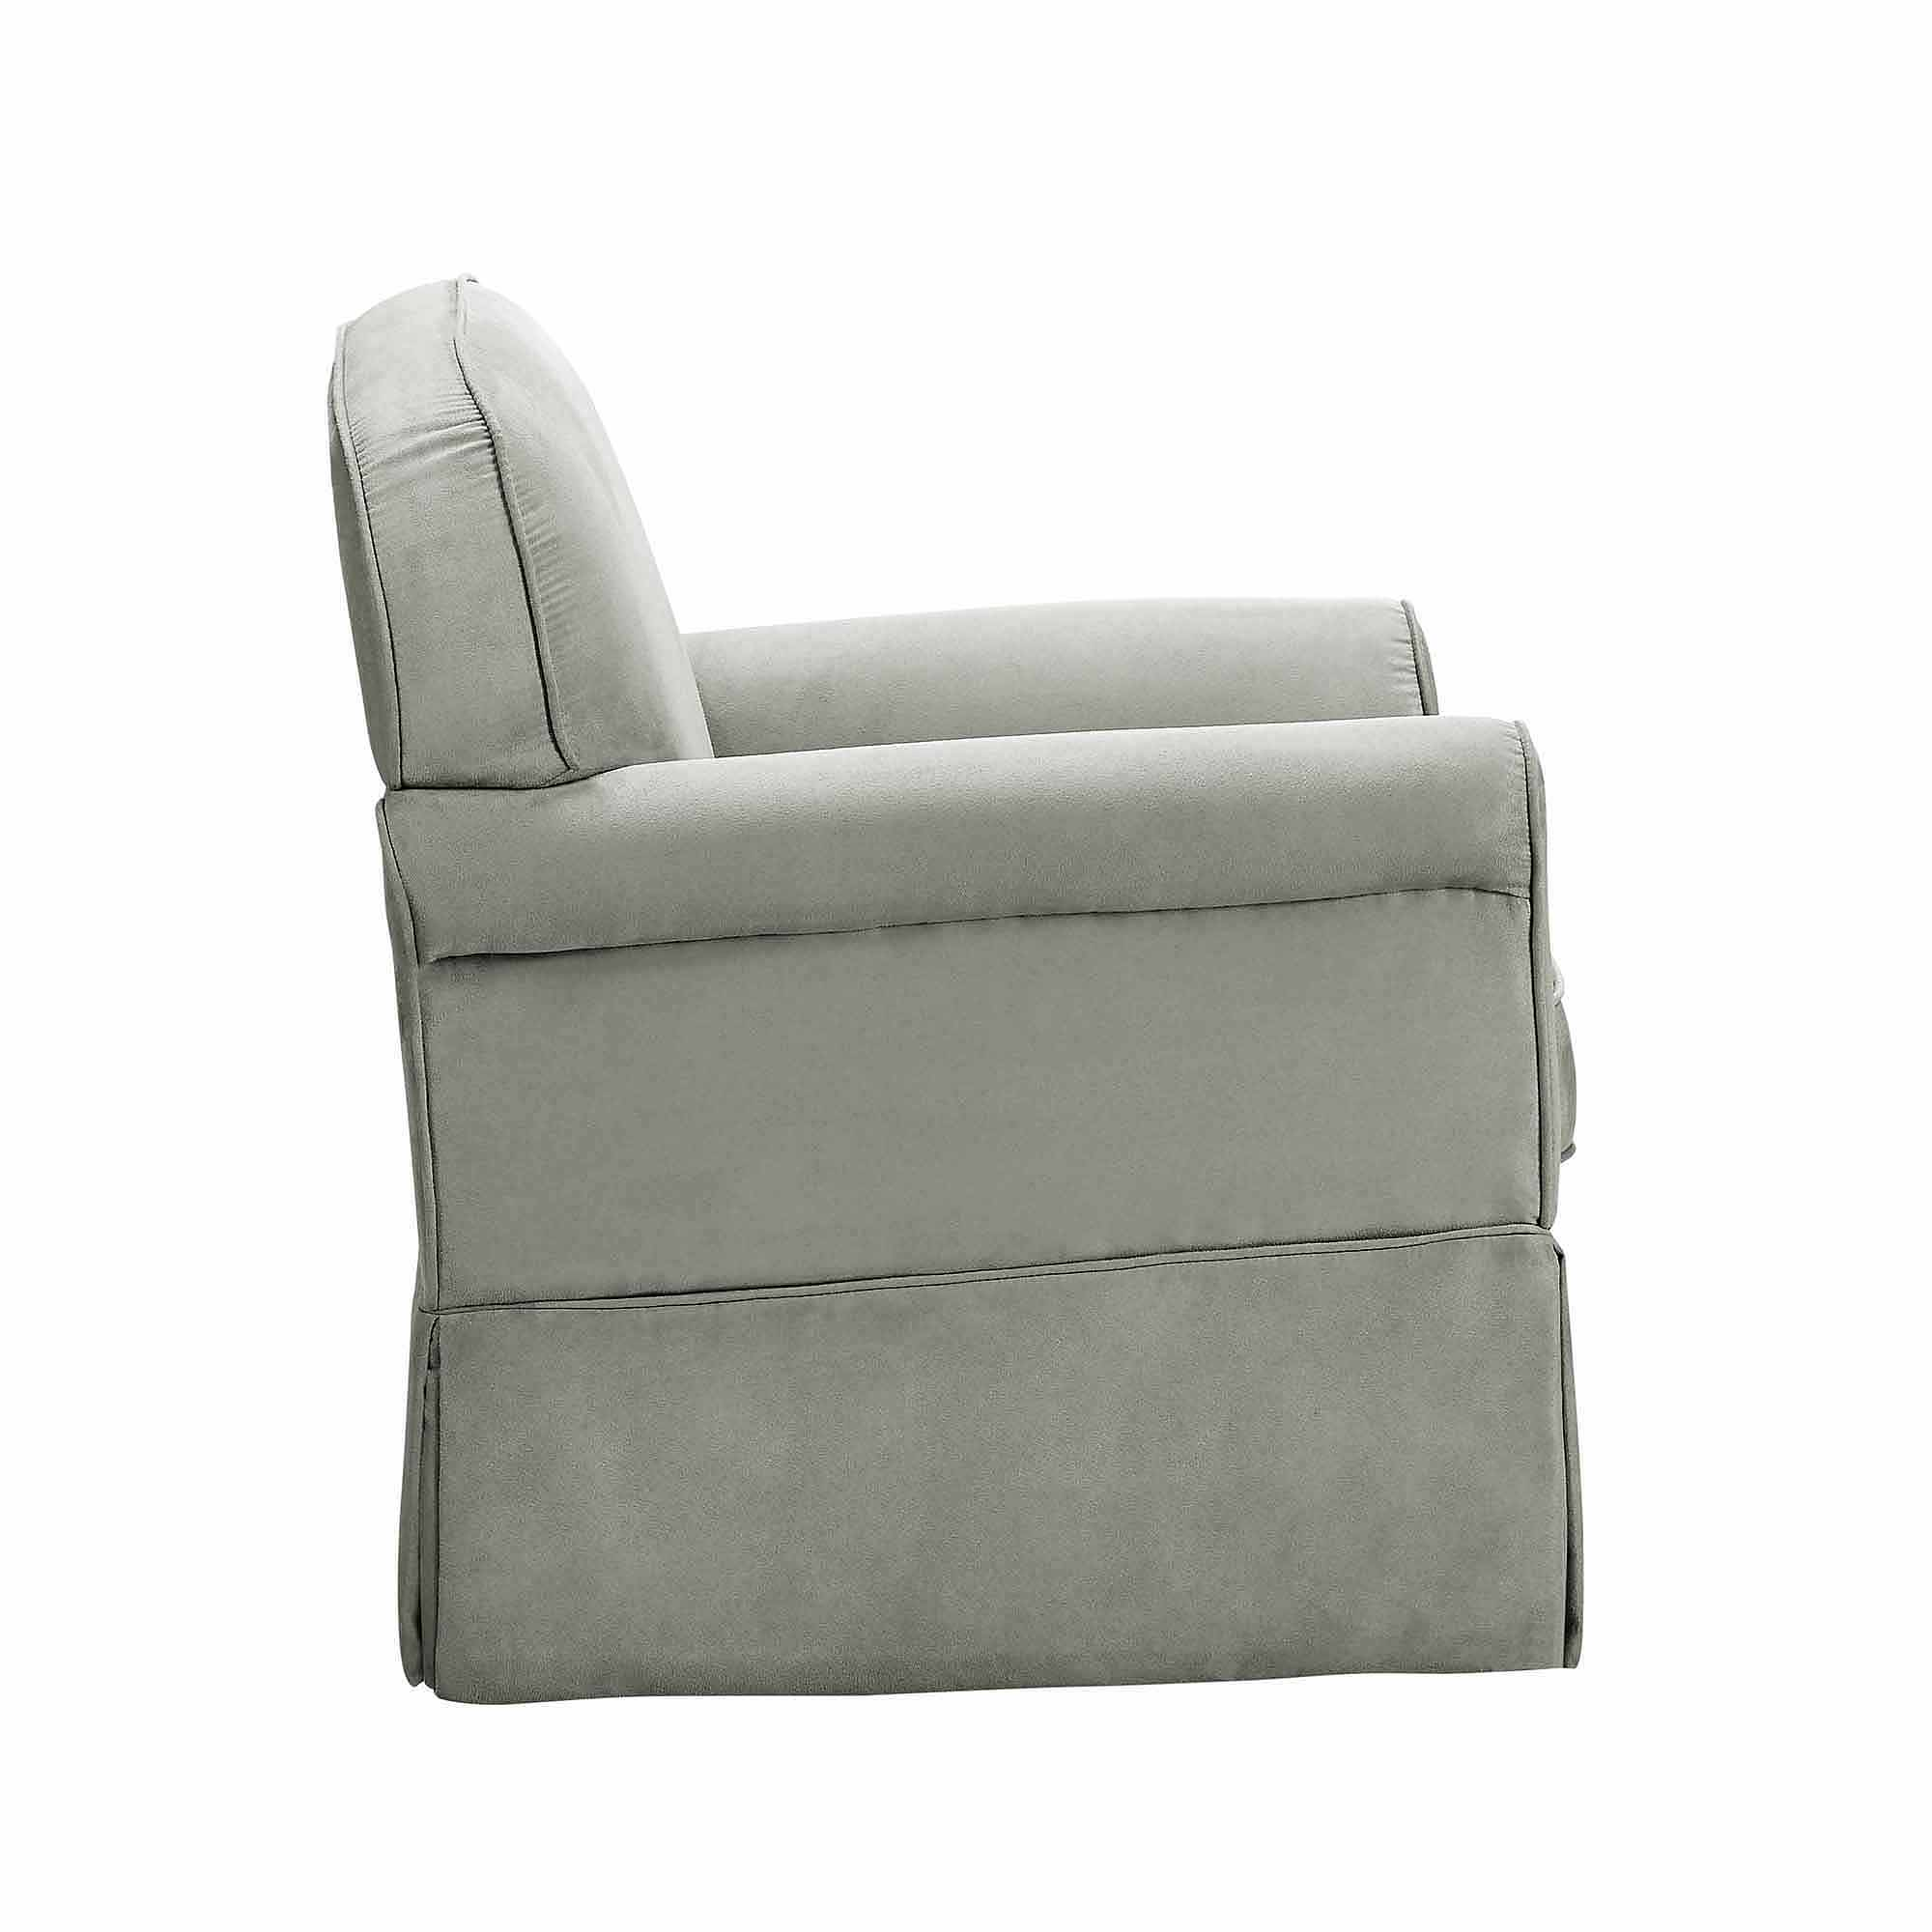 toys r us glider chair new padding for dining room chairs baby relax evan swivel and ottoman gray walmart com